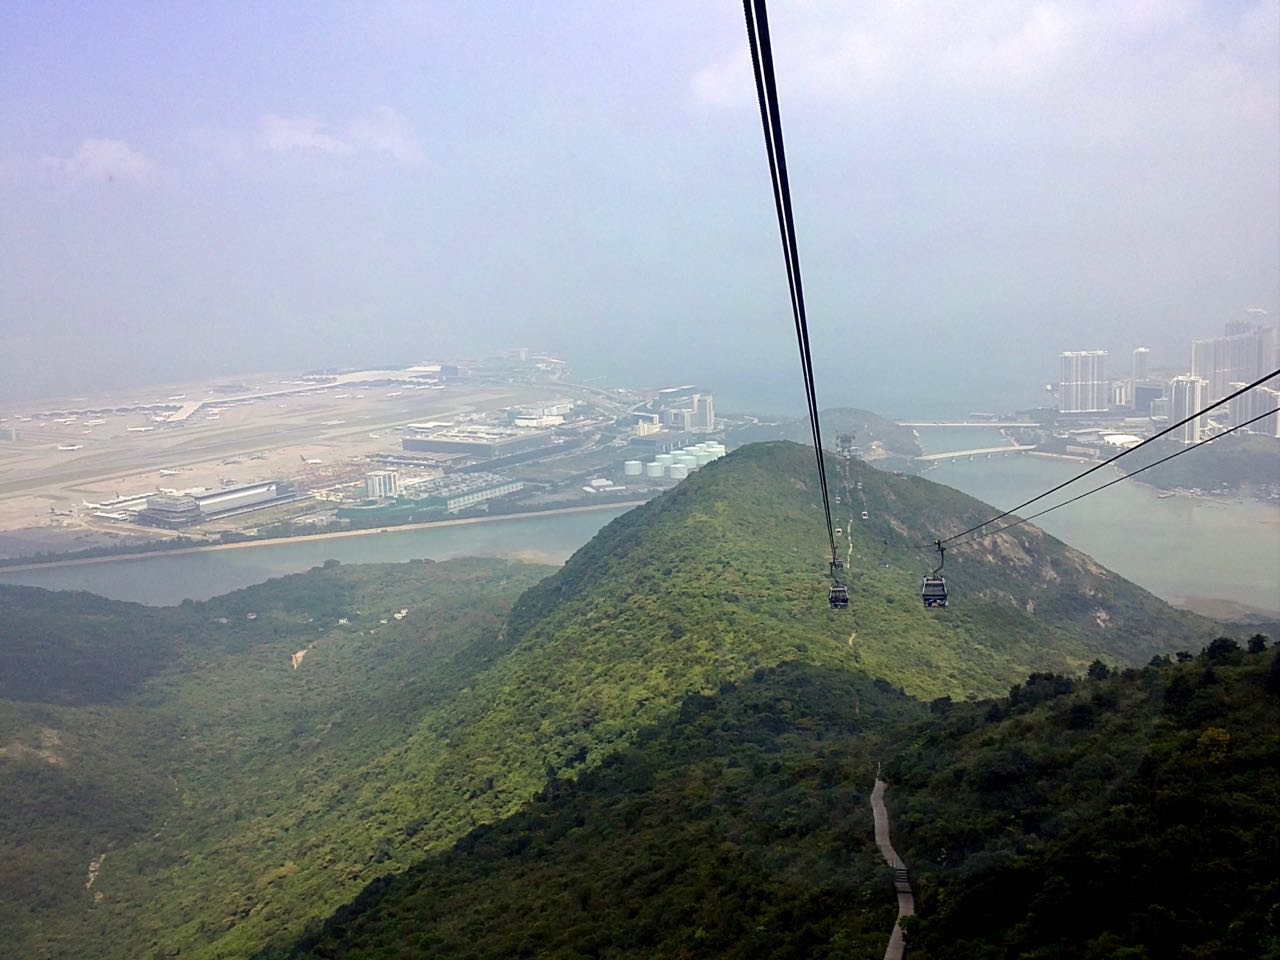 View from Lantau Cable Car in Hong Kong. October 2010, Sony Ericsson Vivaz U5i